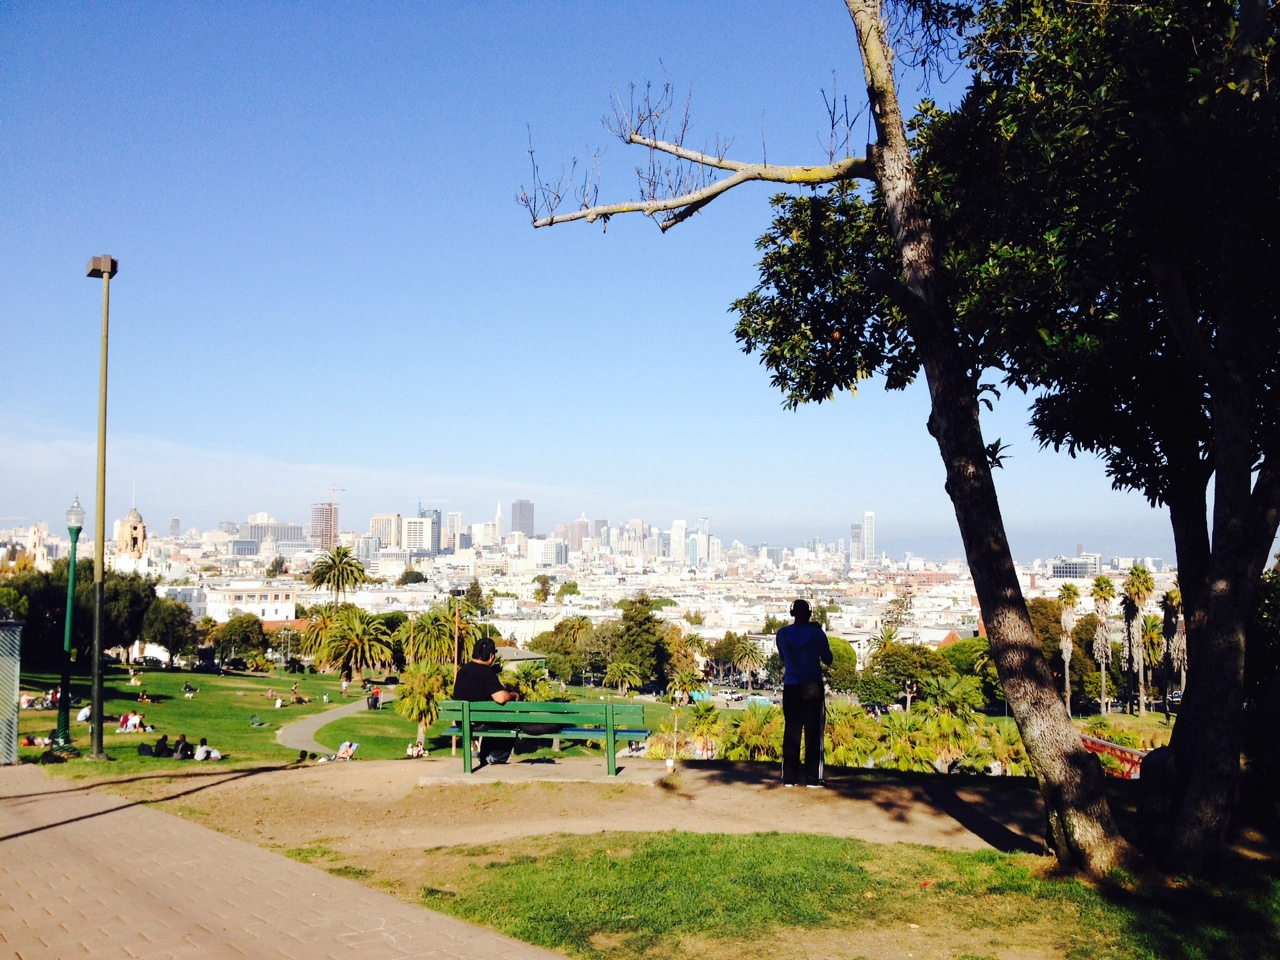 Update on Stabbing in Dolores Park